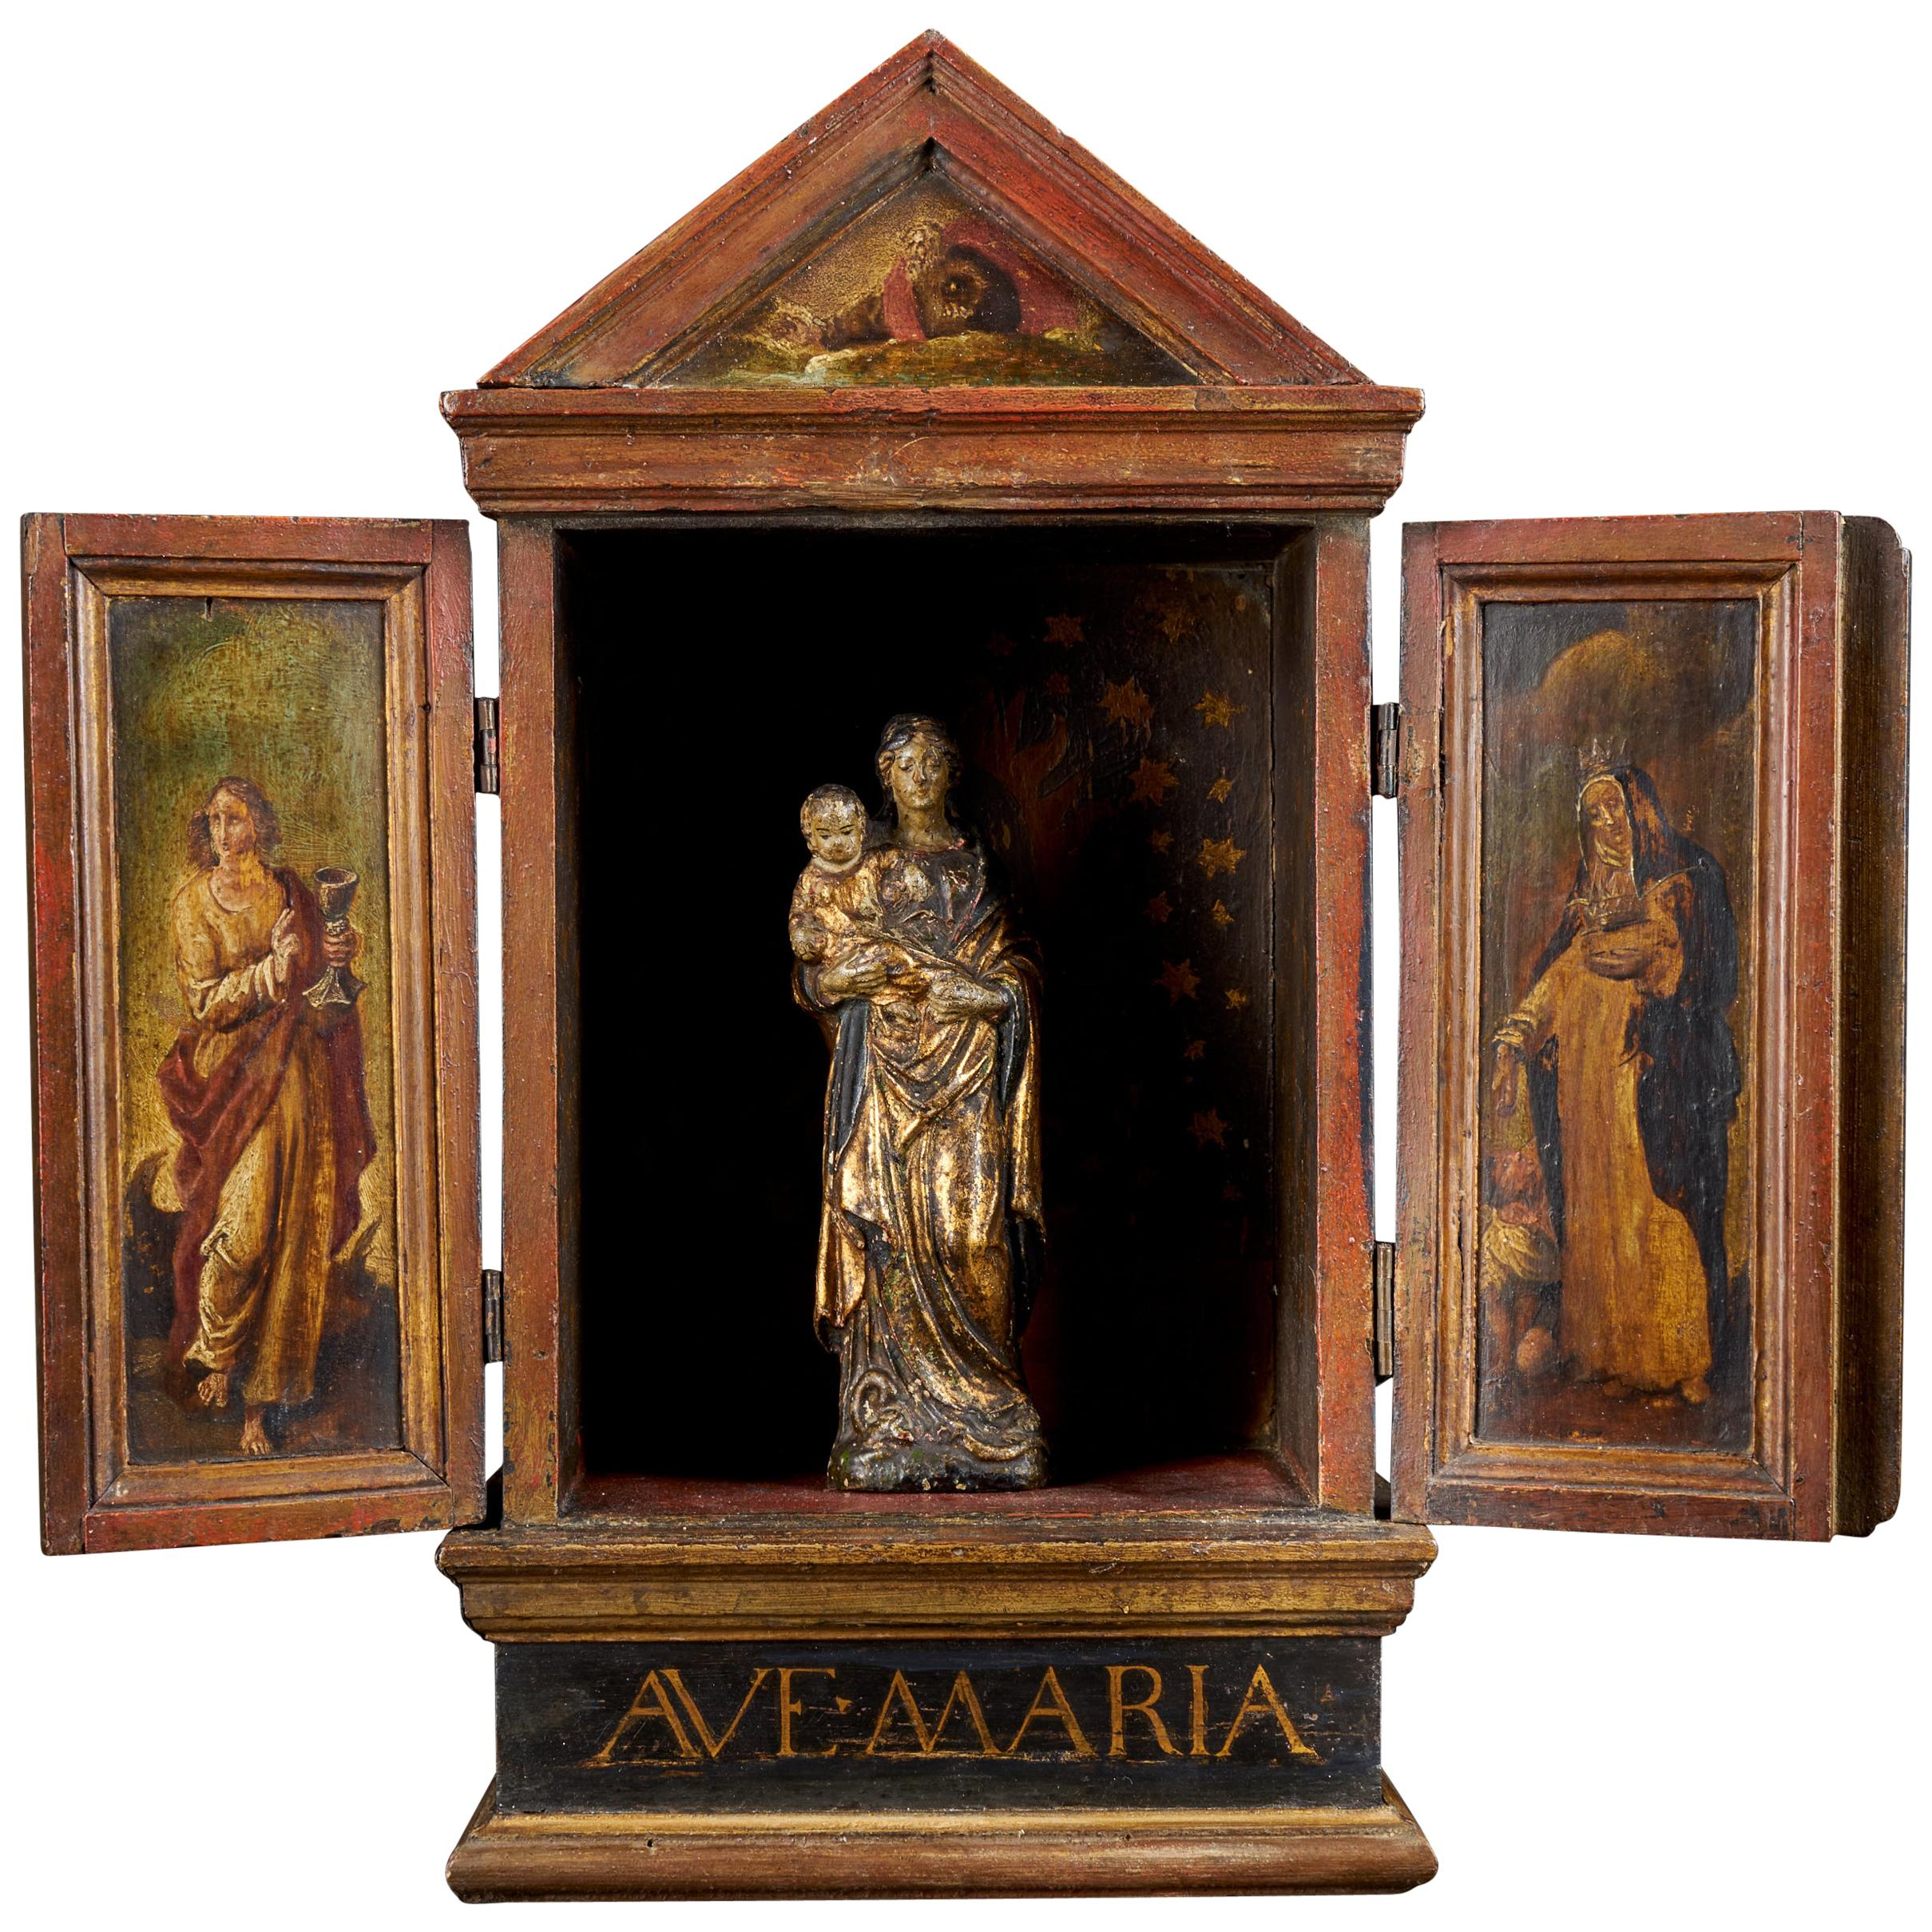 Flemish Small Terracotta Statue in Wooden Reliquary with Decorated Doors